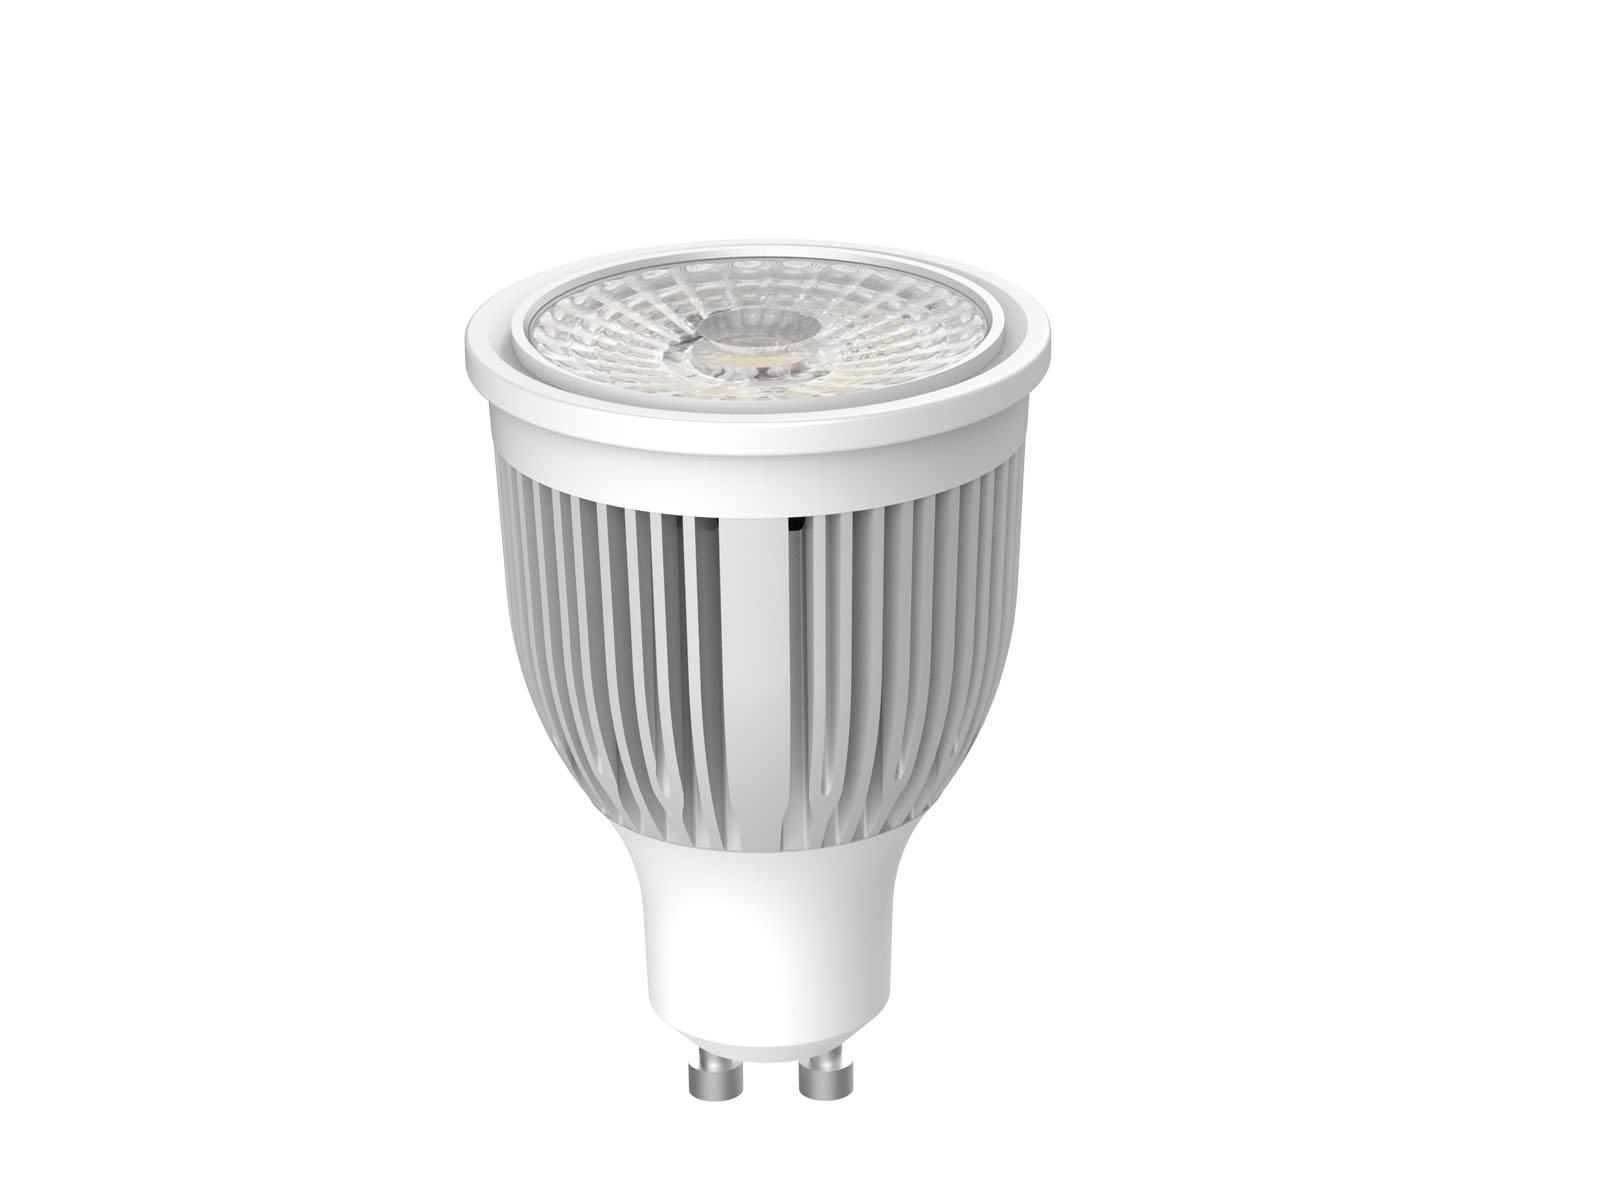 Sp91 Dimmable 6w Best Led Spotlight Ac230v